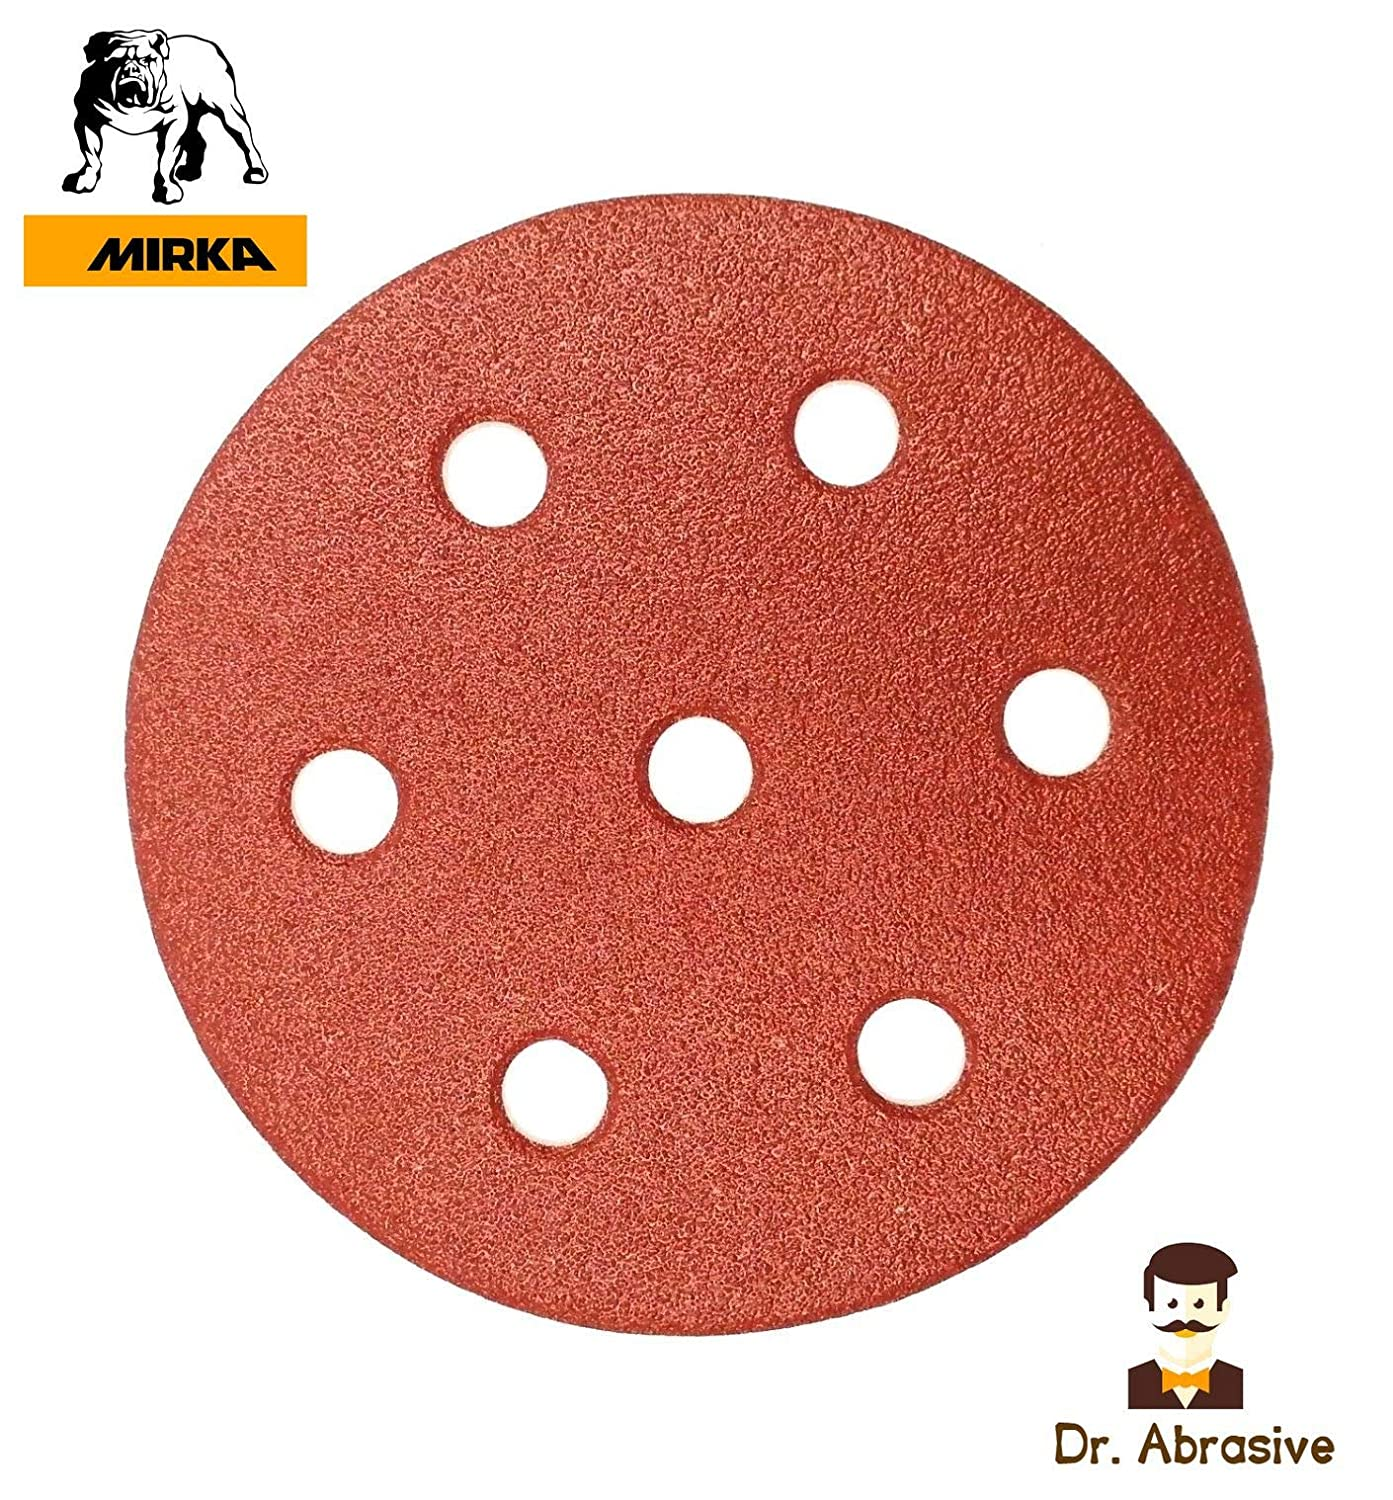 Model 750W Only 180 mm 8 Hole Sanding Discs 7 for Workzone Aldi Mirka Pads Pack of 10 P180 Quality 407